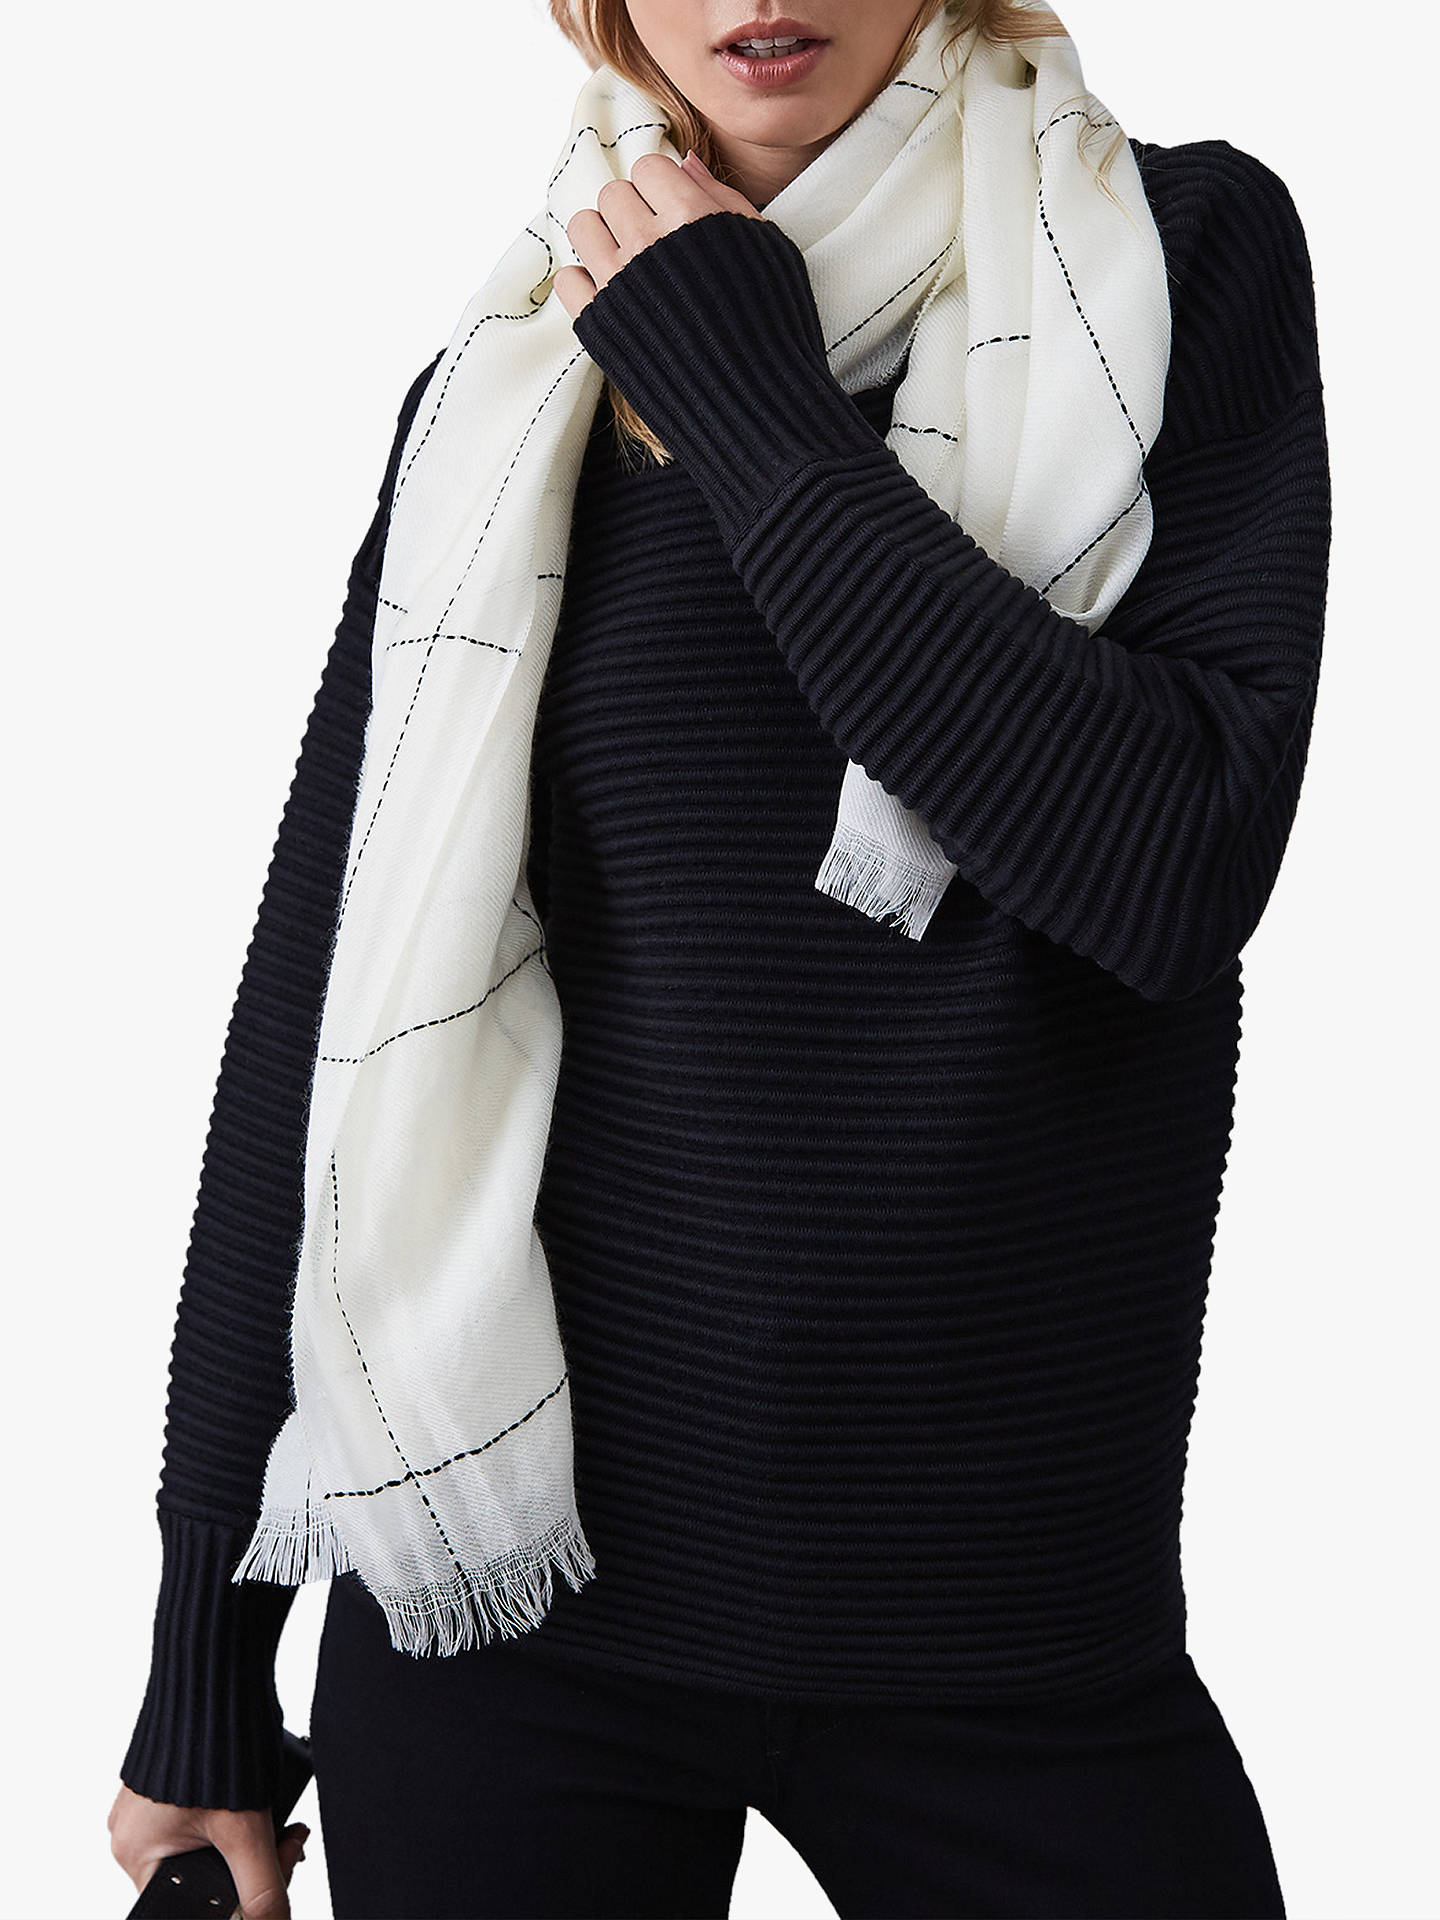 BuyReiss Kimmy-White Check Print Scarf, White/Black, One Size Online at johnlewis.com